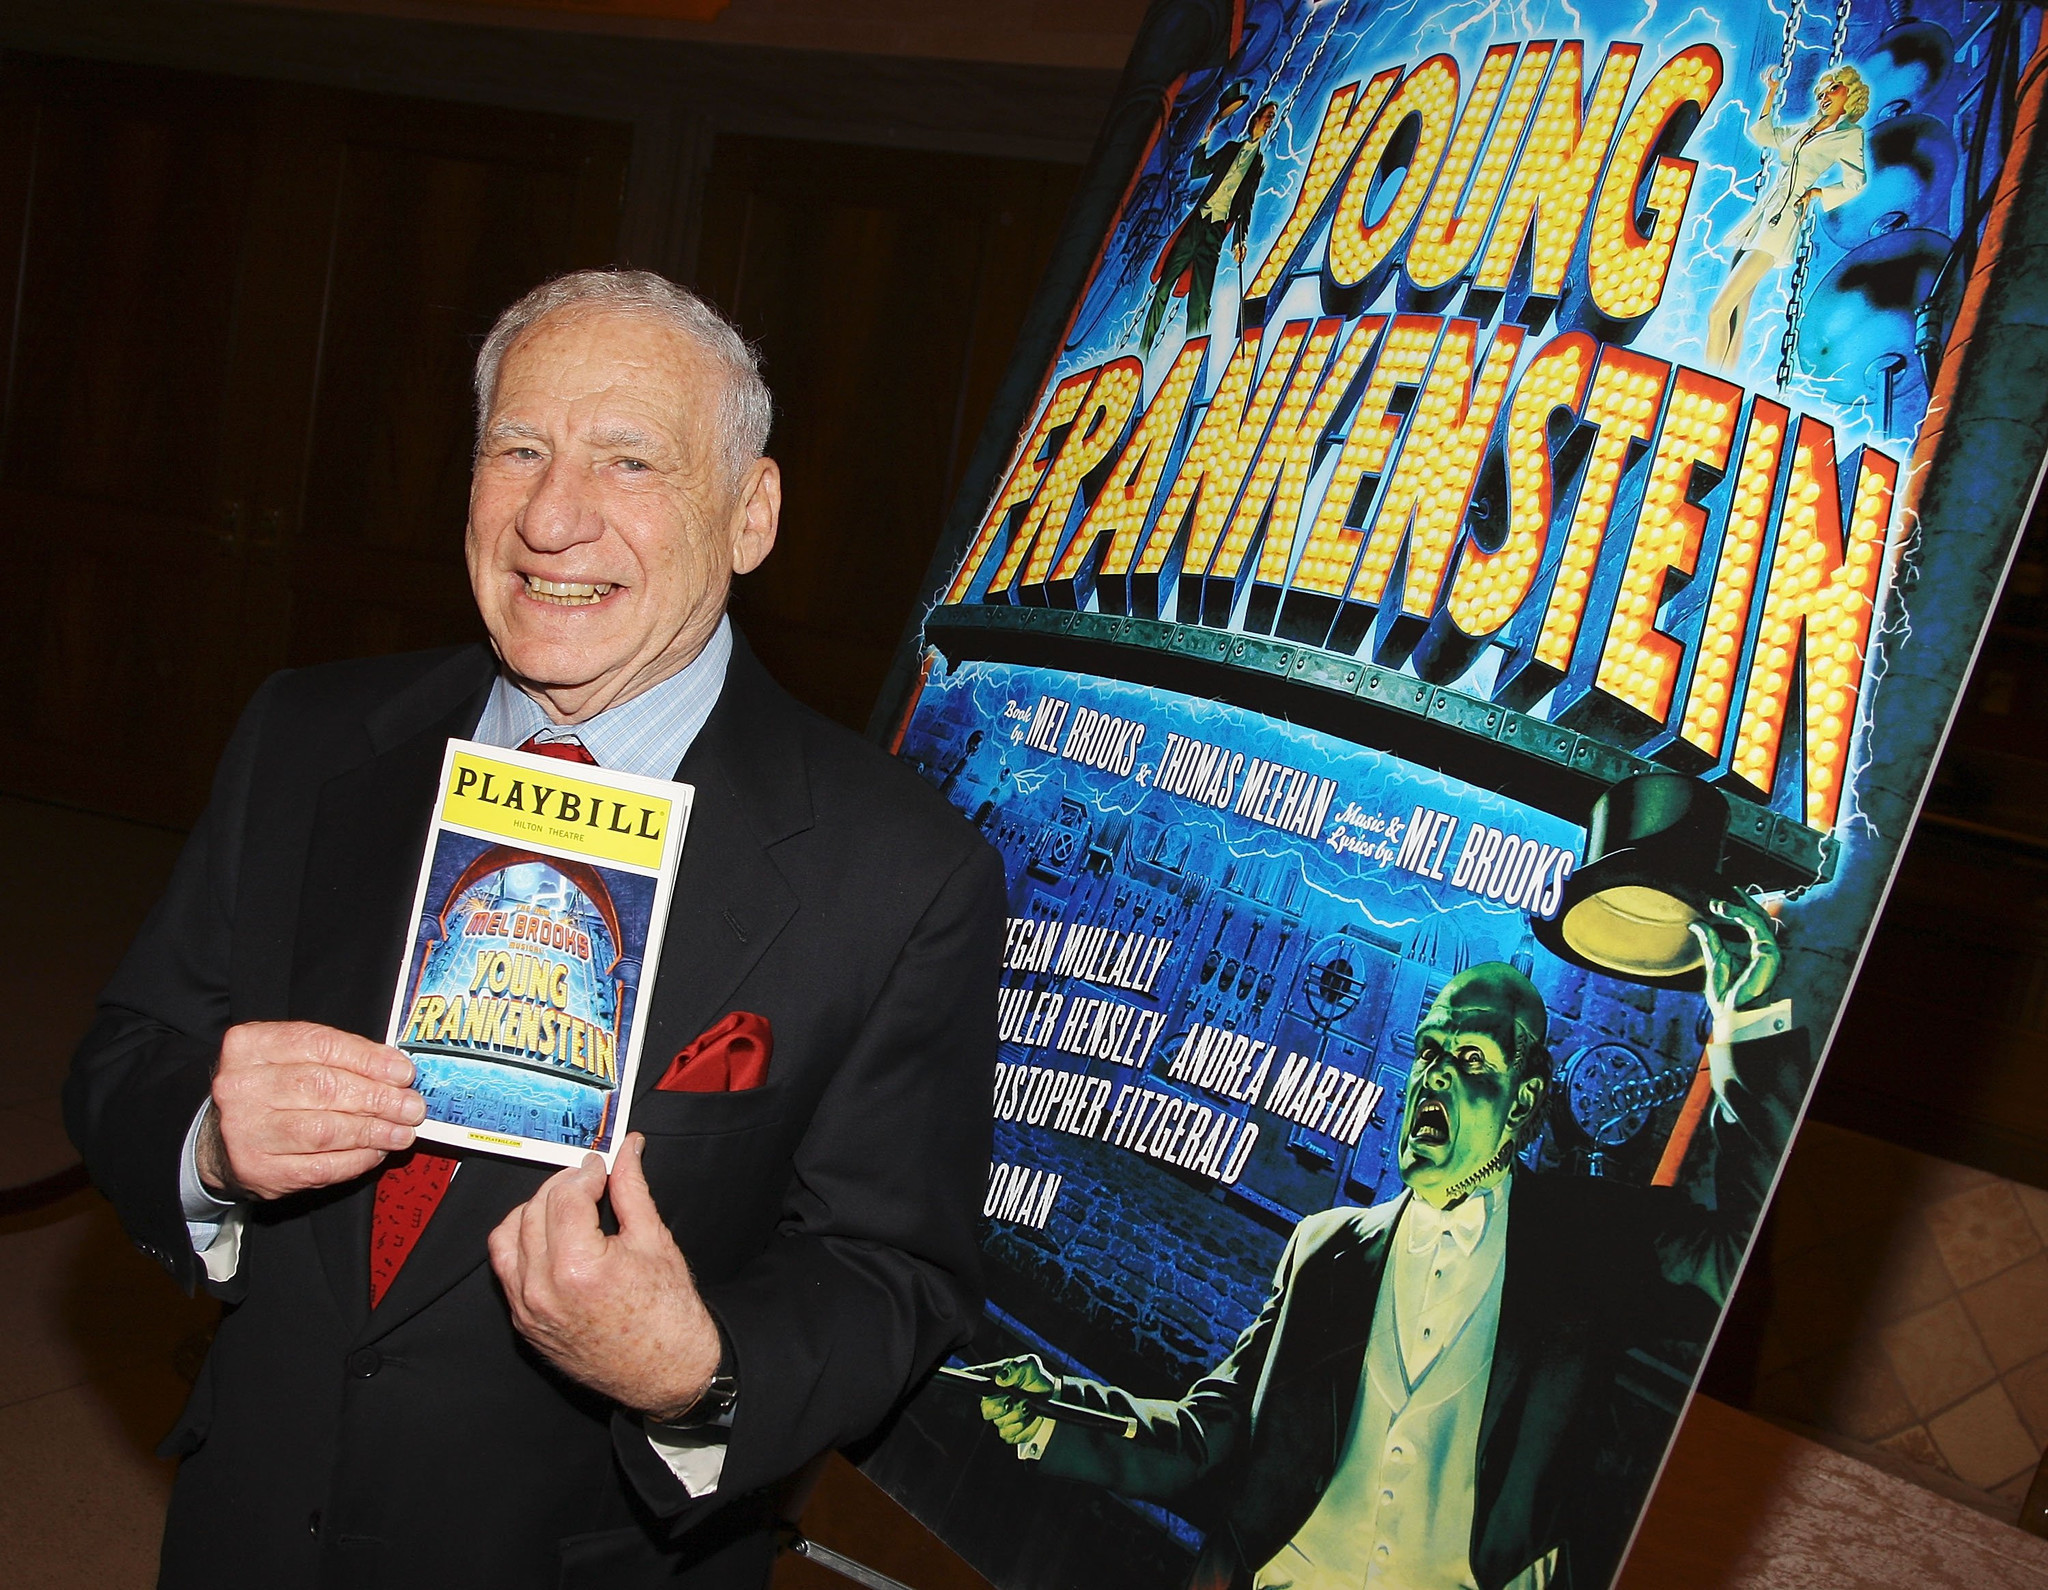 'Young Frankenstein' announced as ABC's next live musical